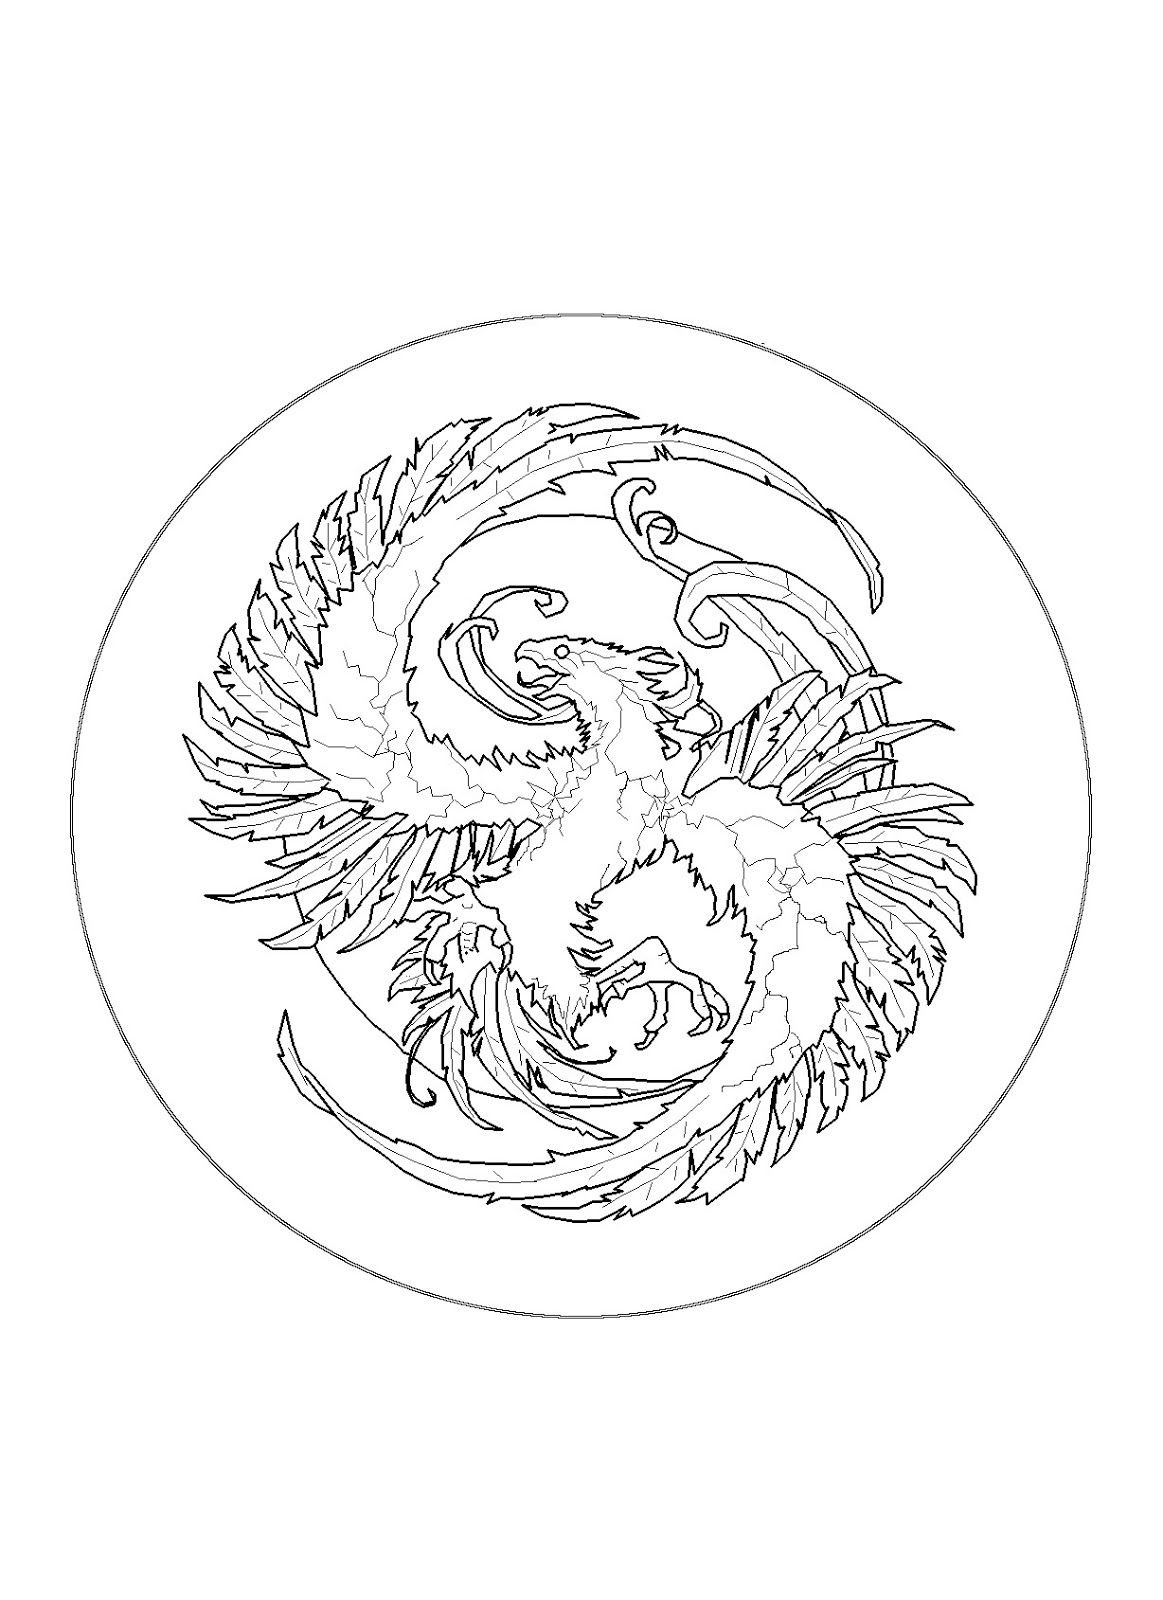 Fiery Phoenix Portrait Coloring Pages Coloring Books Free Printable Coloring Pages